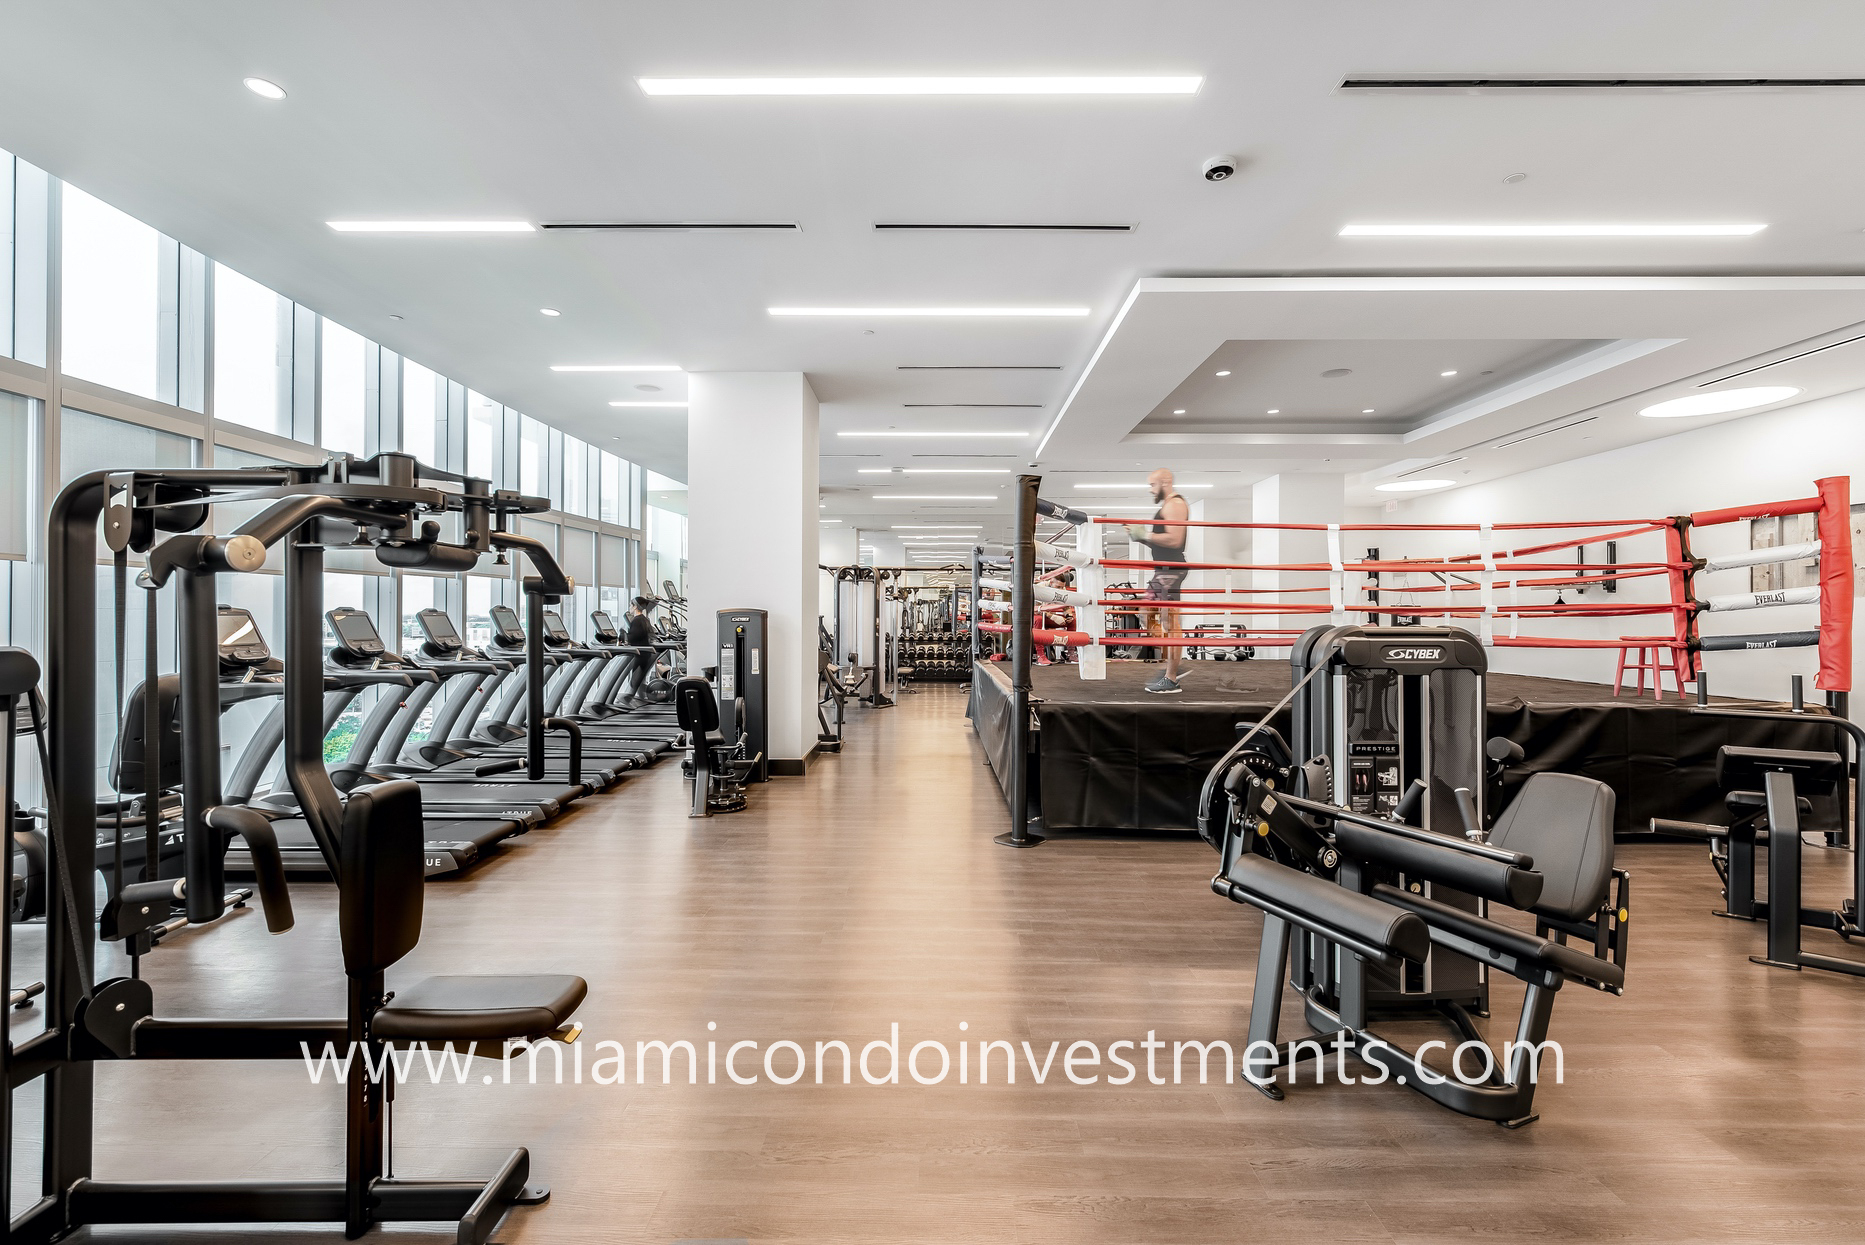 Paramount Miami gym and boxing ring